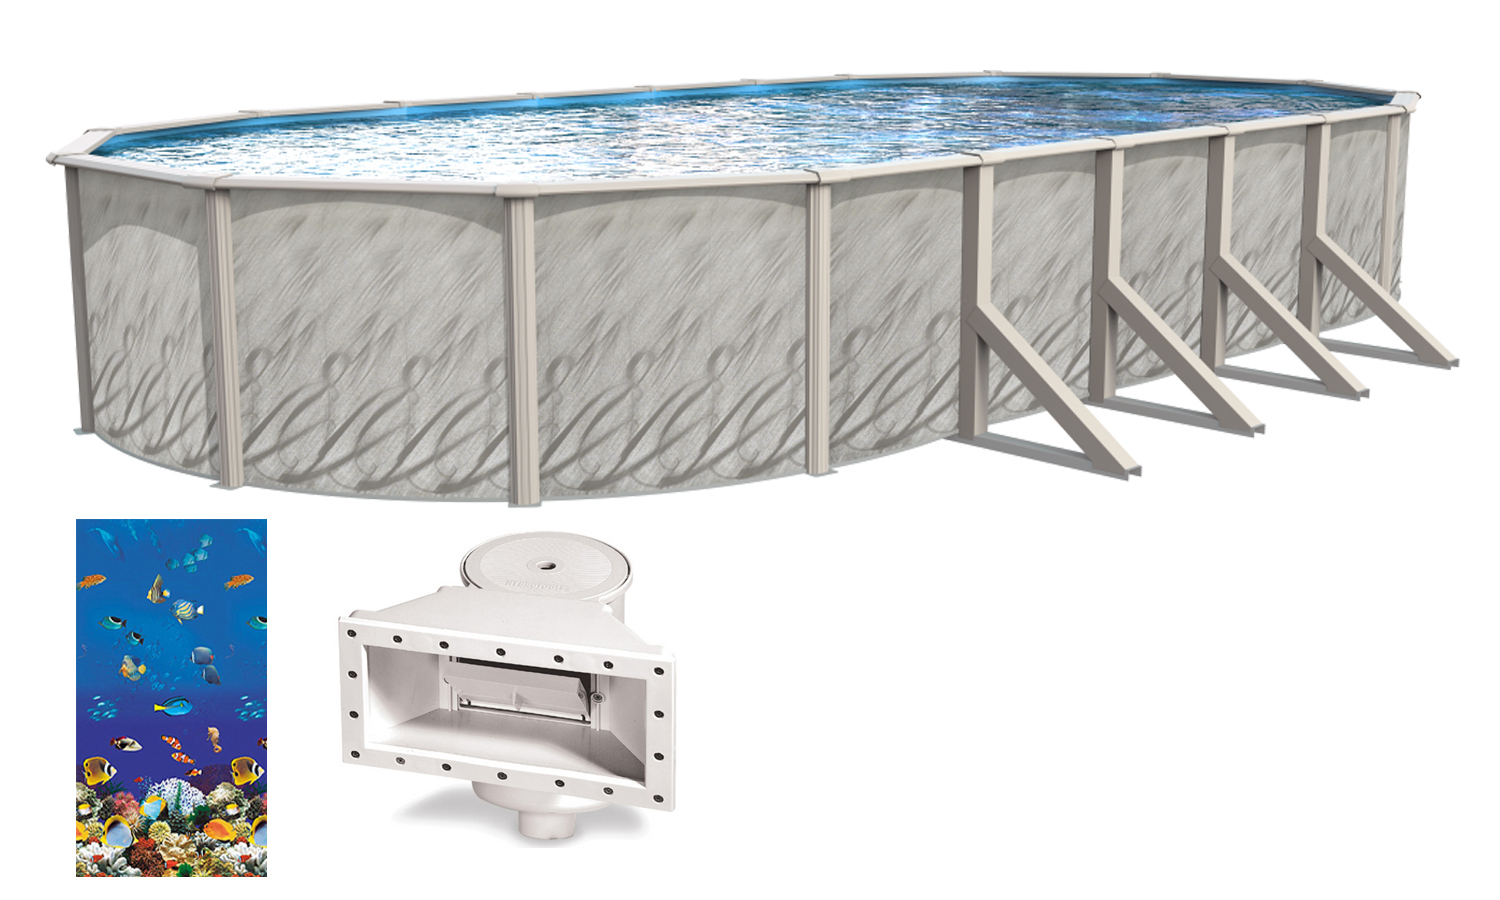 12x24x52 ft oval meadows above ground swimming pool w - Above ground oval swimming pools for sale ...